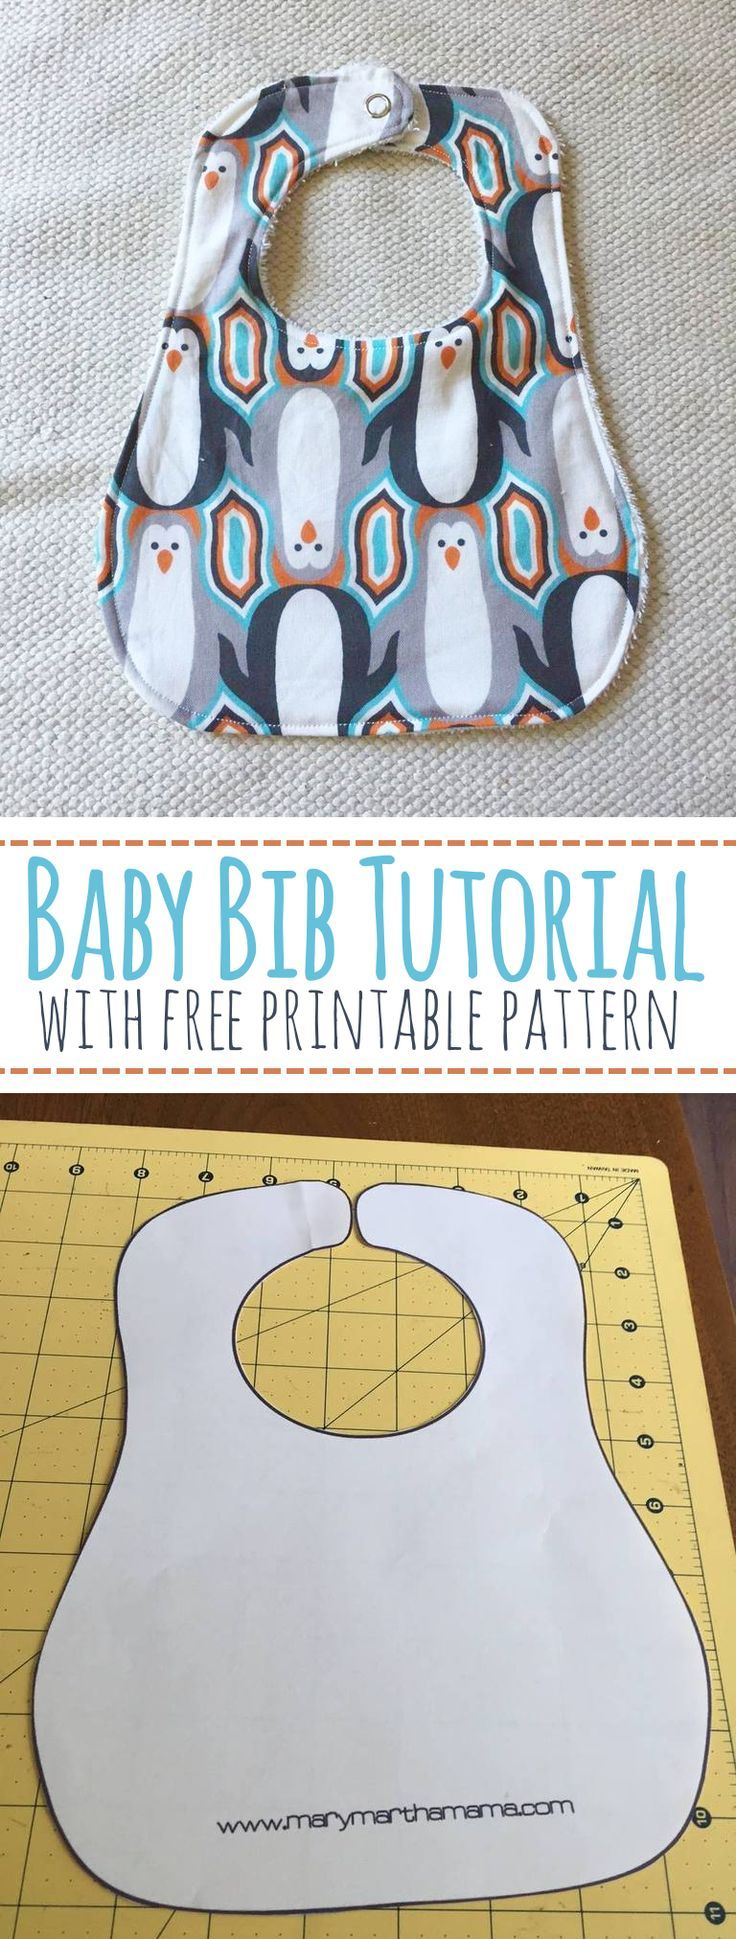 Baby Bib Tutorial with Free Printable Pattern – Mary Martha Mama- How to make a